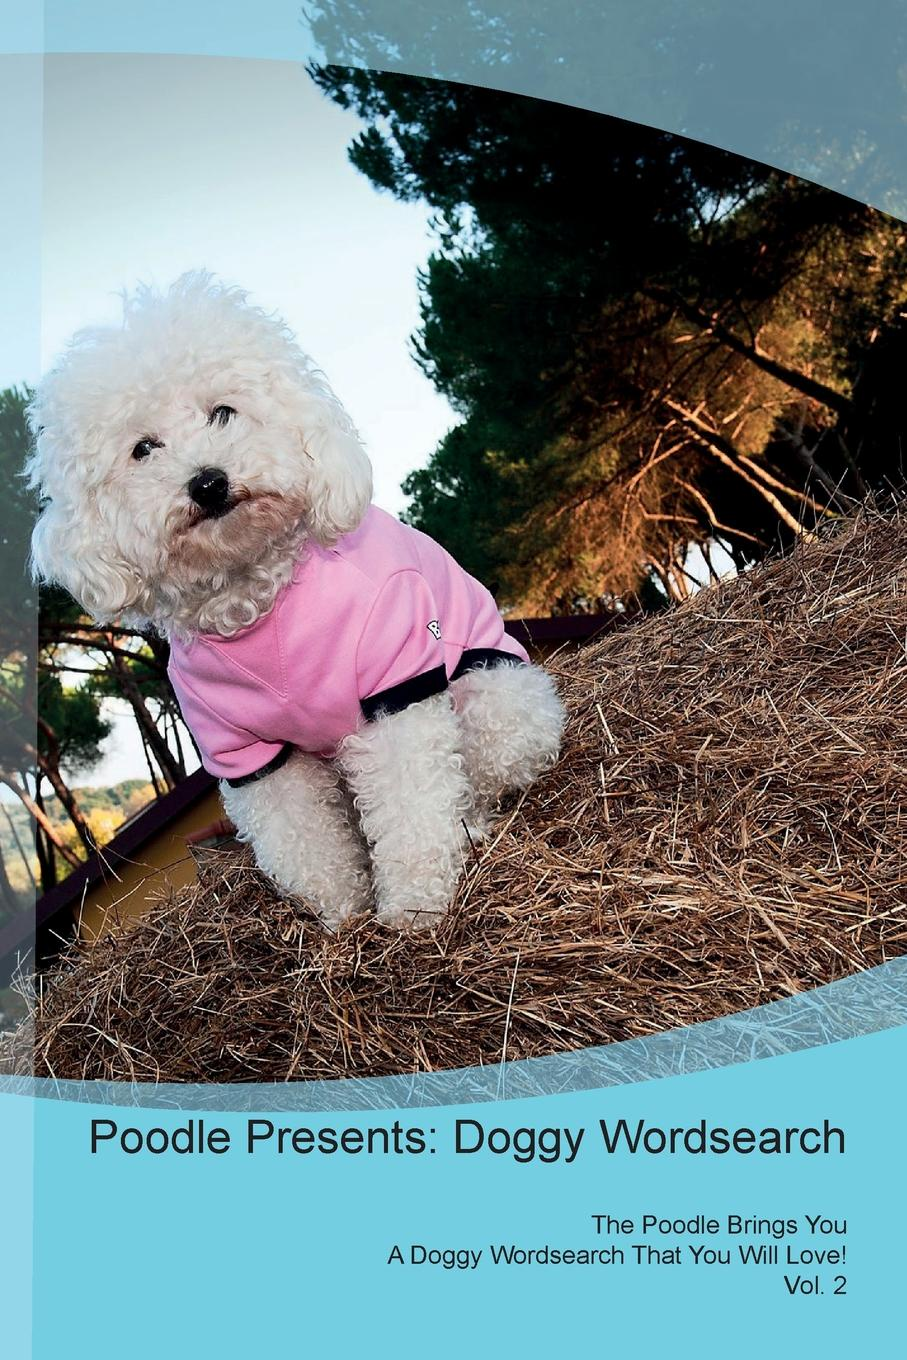 Doggy Puzzles Poodle Presents. Wordsearch The Brings You A That Will Love! Vol. 2